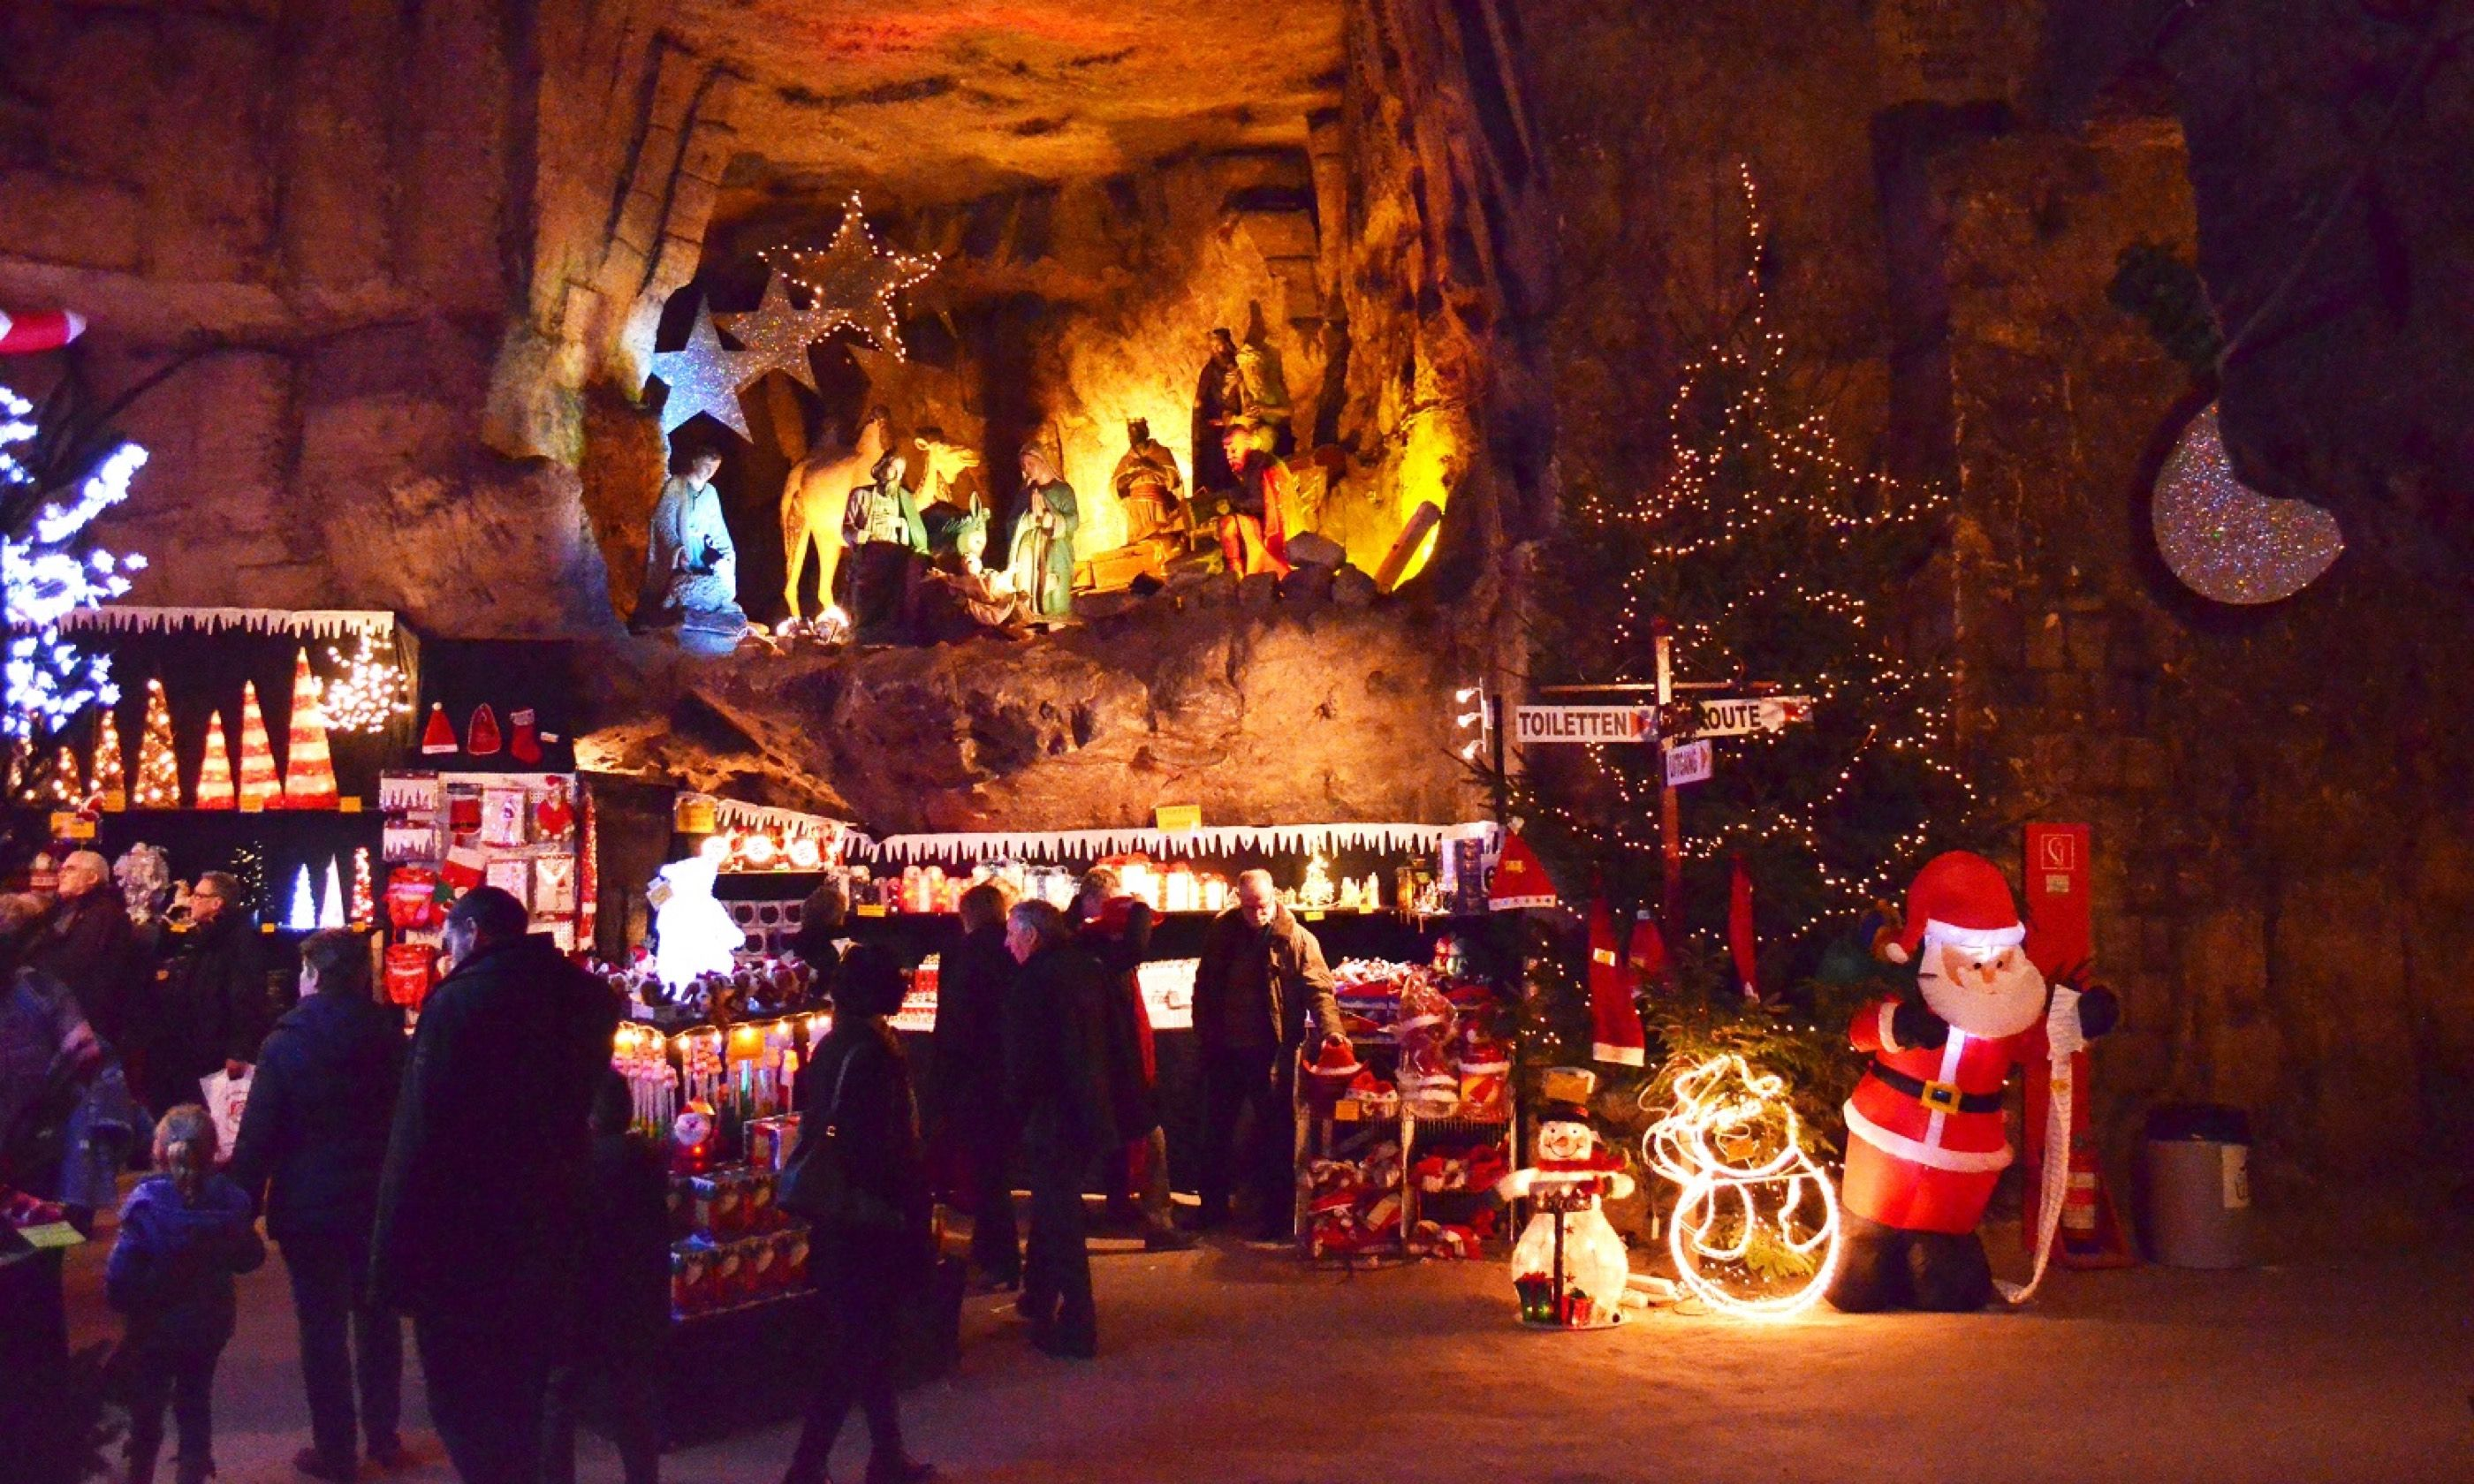 A Christmas market in a cave (Gemeentegrot market)